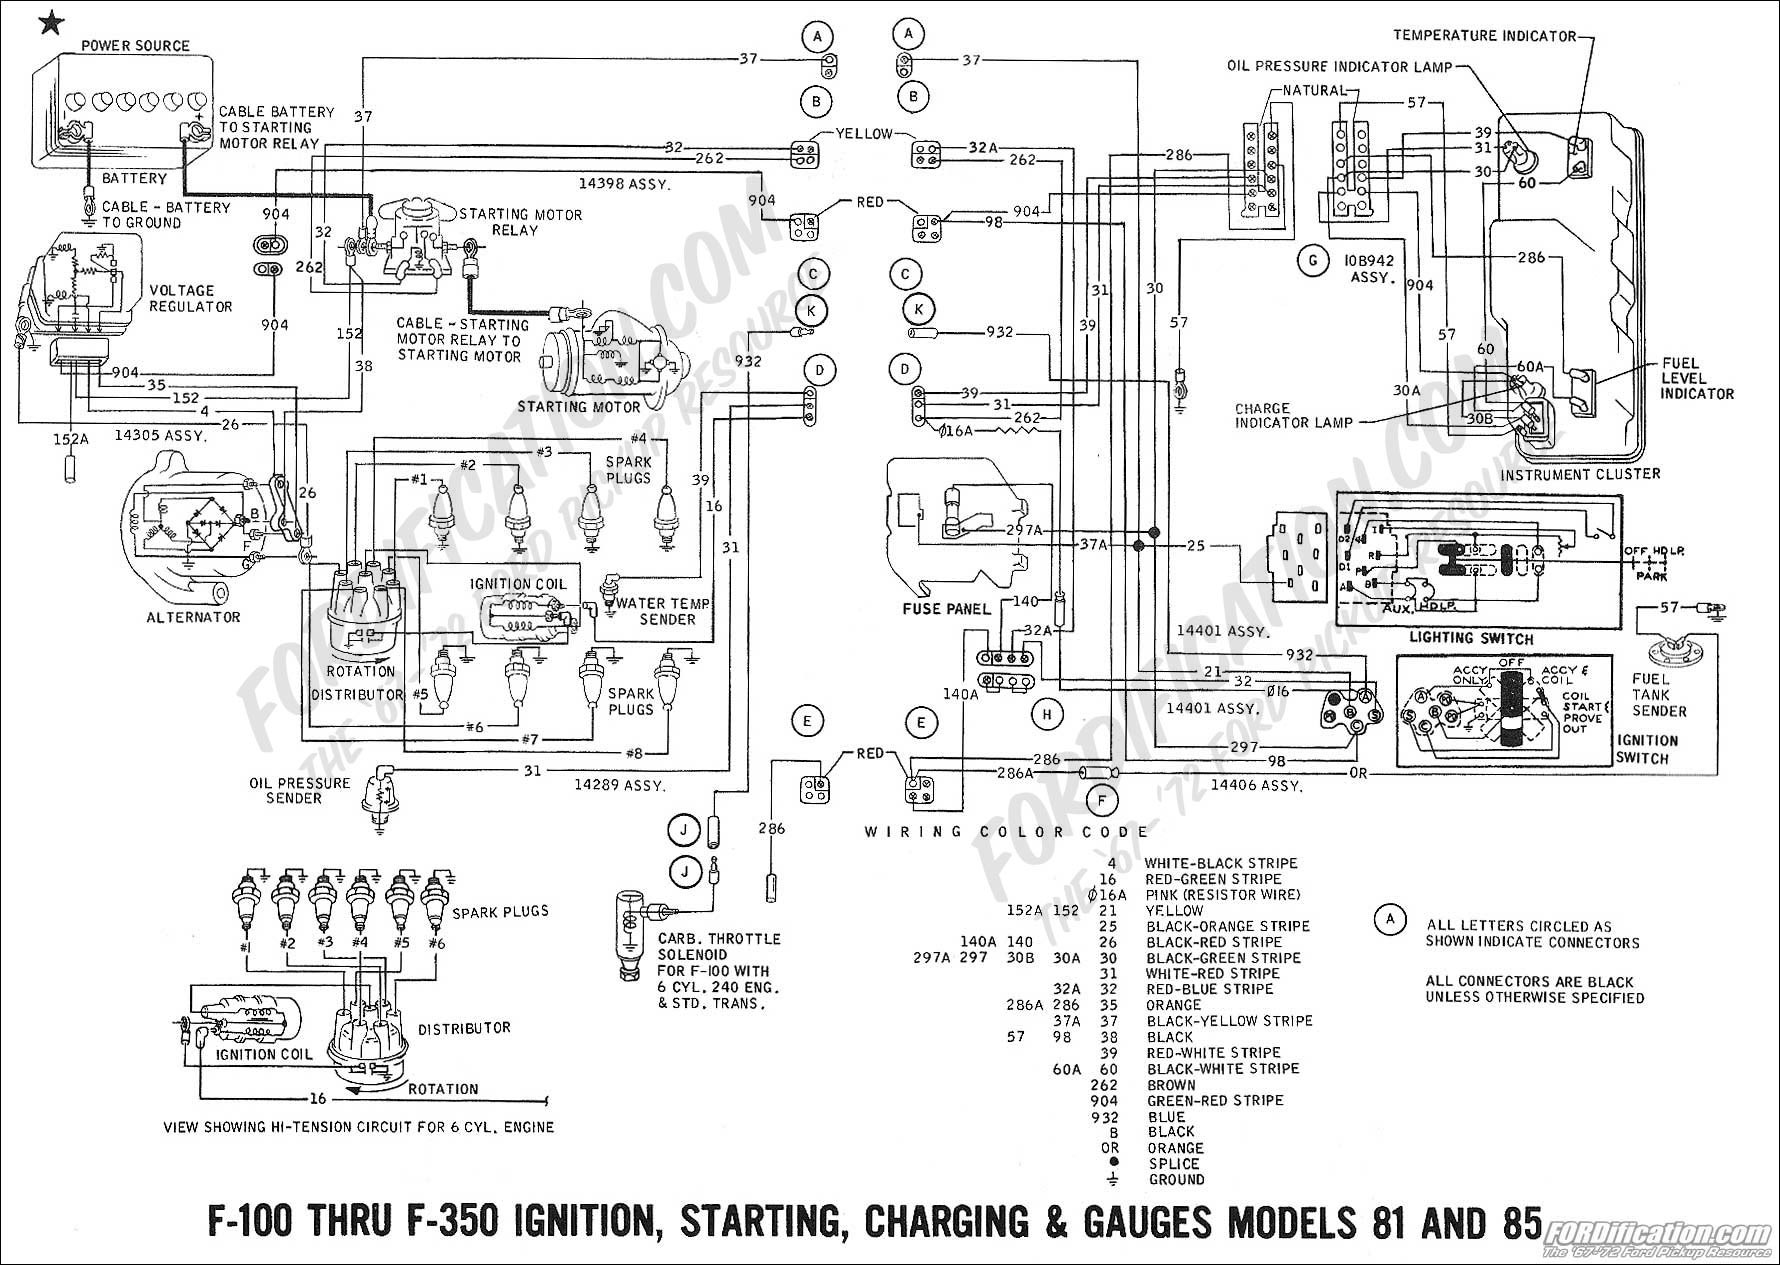 1994 Ford F150 Wiring Diagram F700 Diagrams Additionally Truck Charging System Further 1970 Of